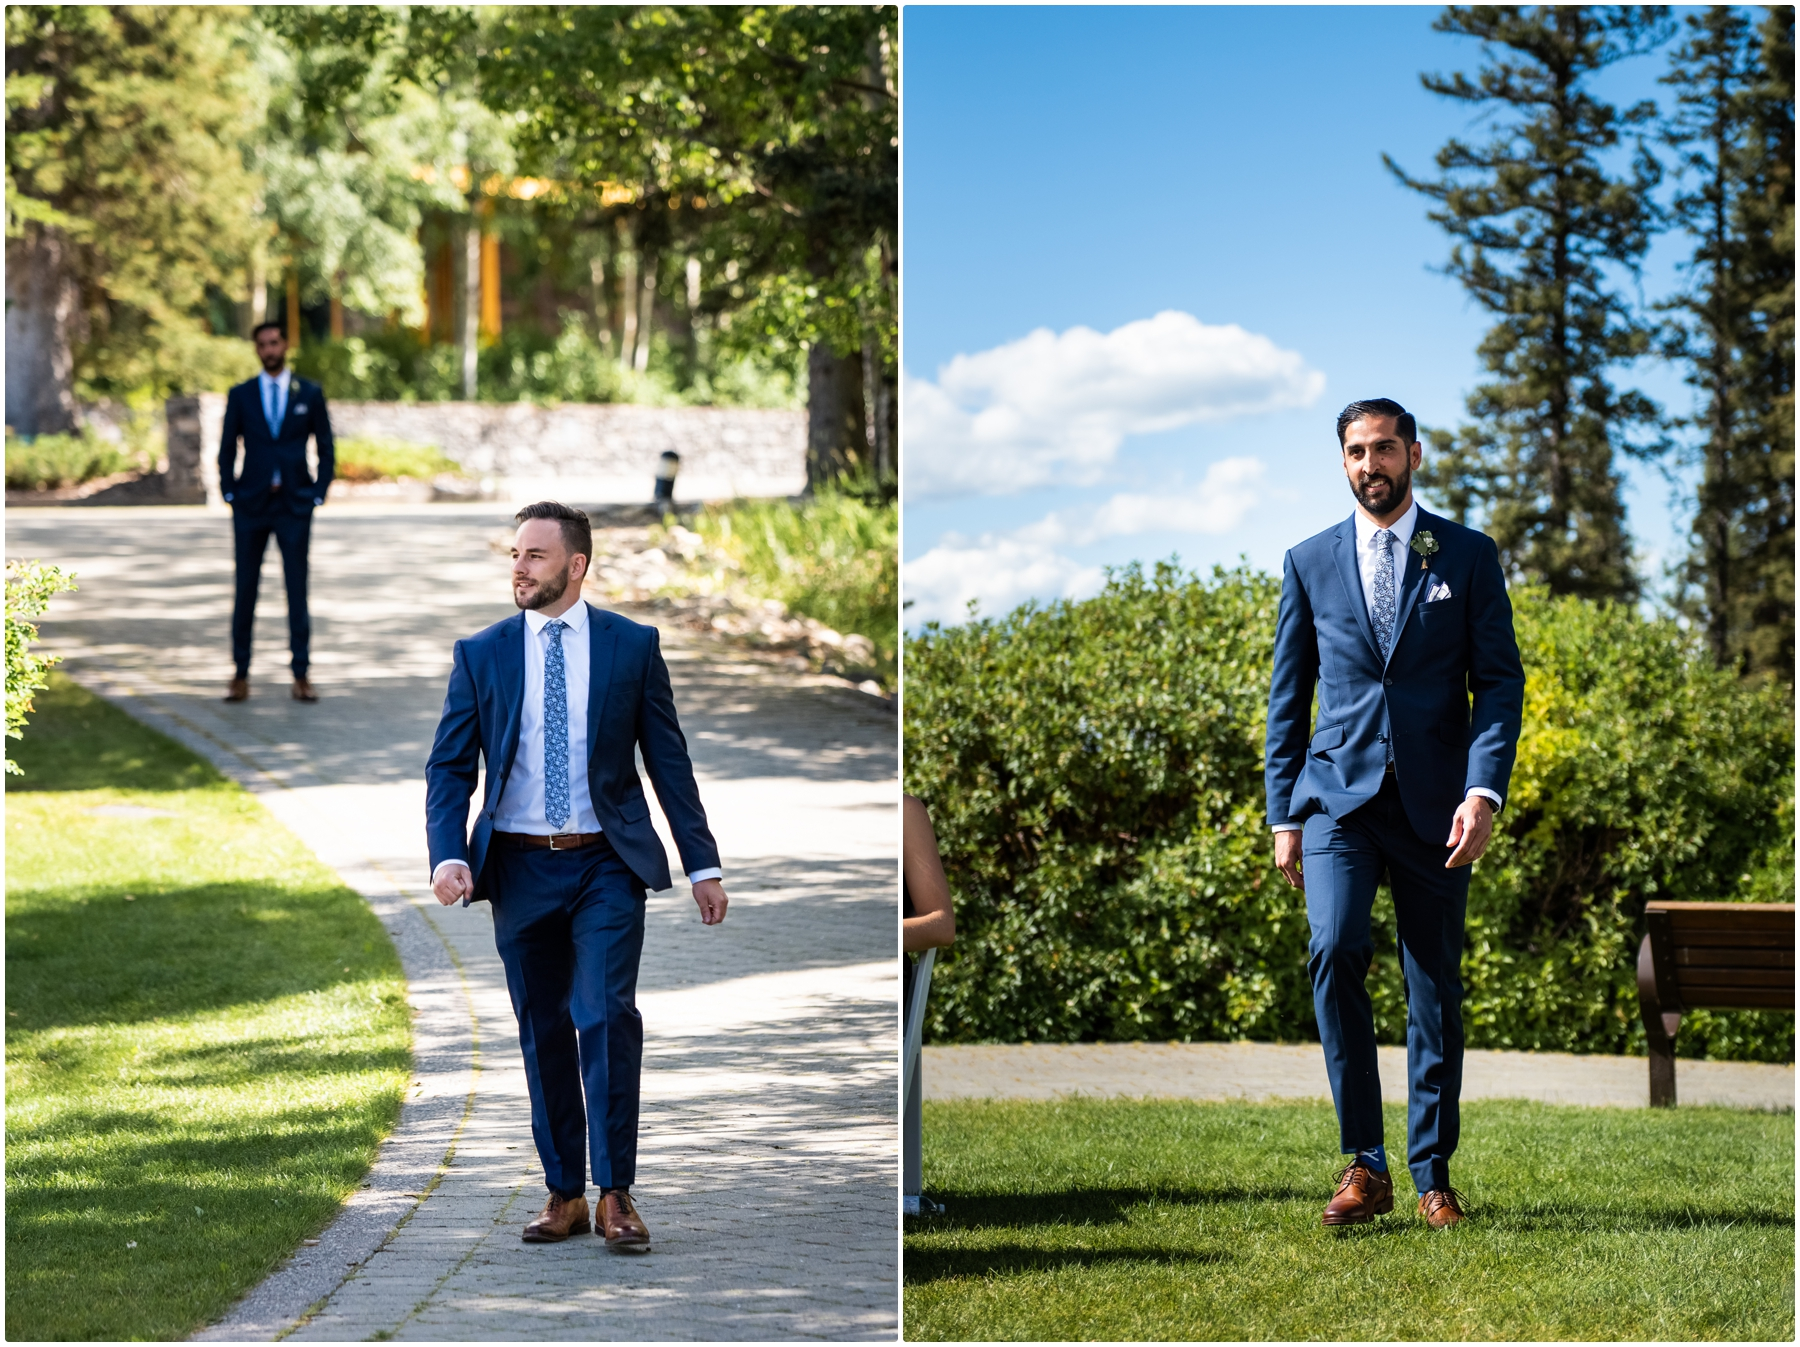 Azuridge Estate Hotel Wedding - Outdoor Wedding Ceremony Photography